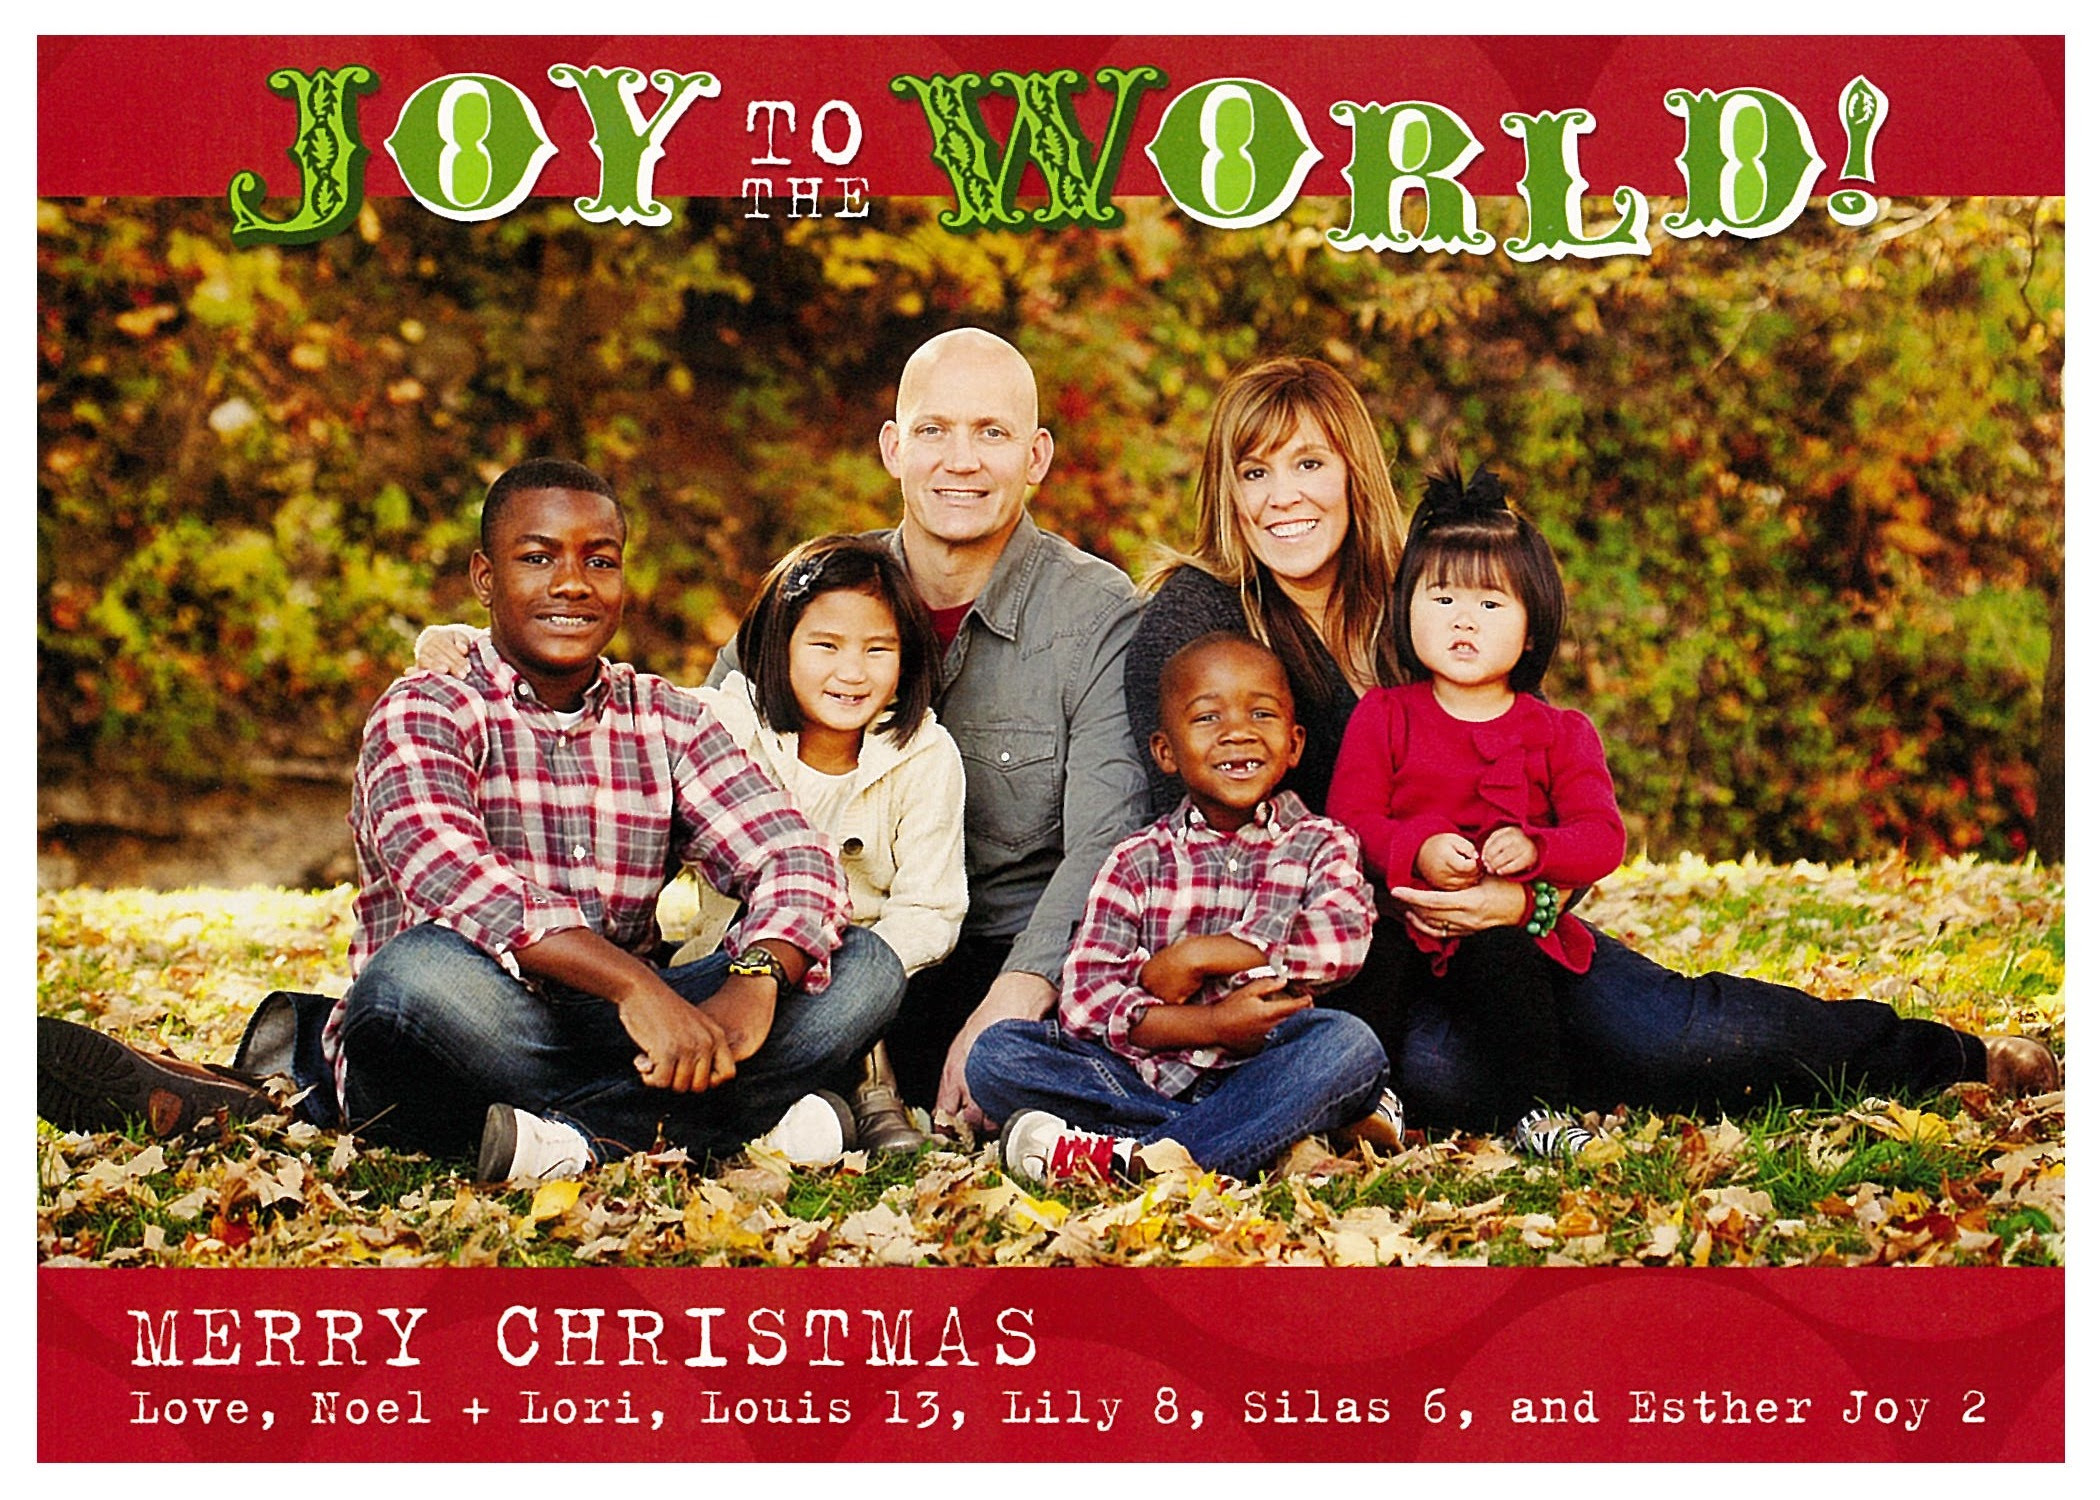 how to take a family photo for your christmas cards many people stay in touch with family and friends through holiday themed cards pictures and gifts - Best Photo Christmas Cards